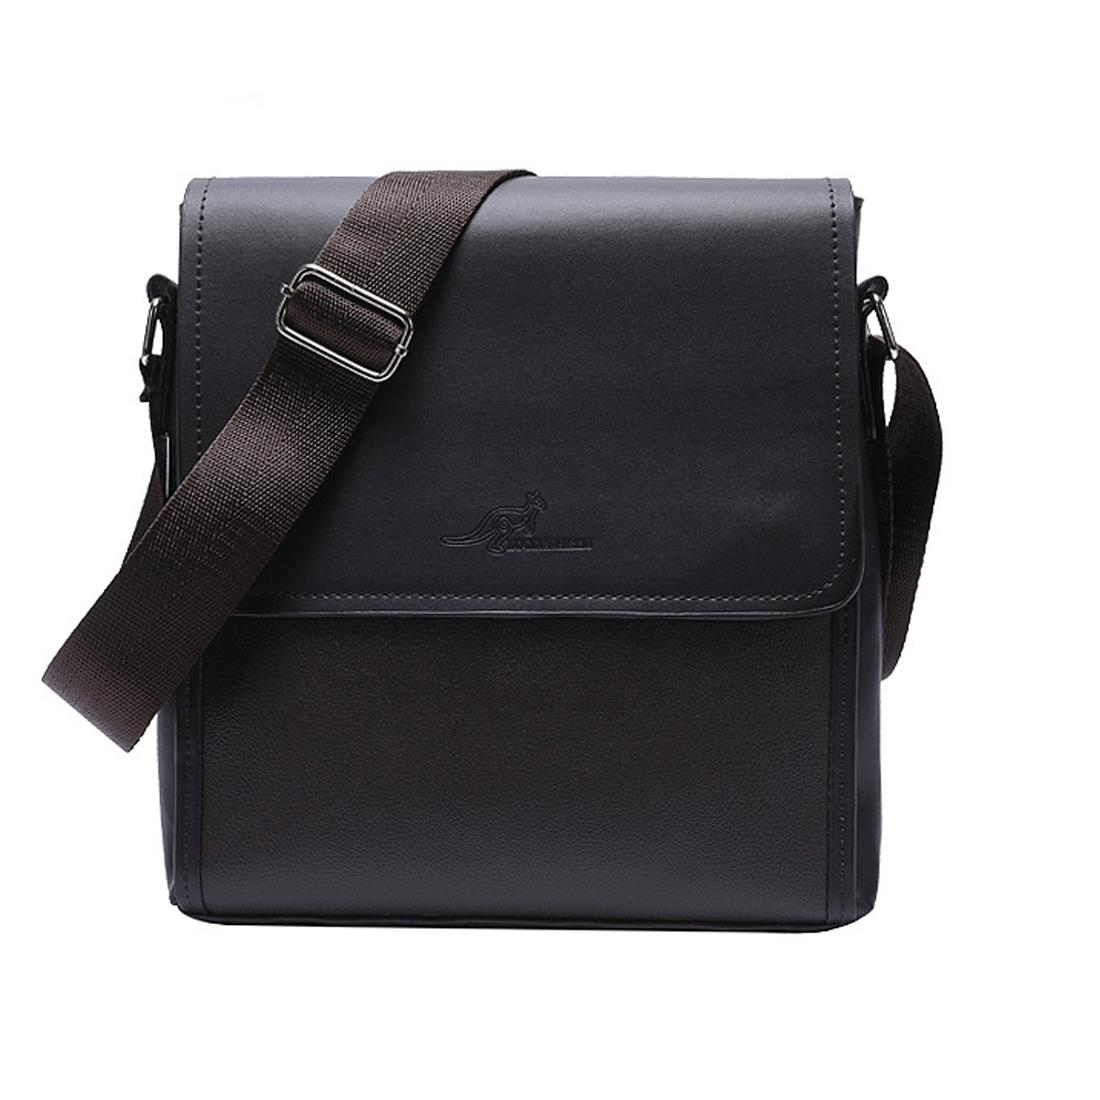 3b7ad5653fa Messenger Bags for sale - Messenger Bags for Men online brands ...